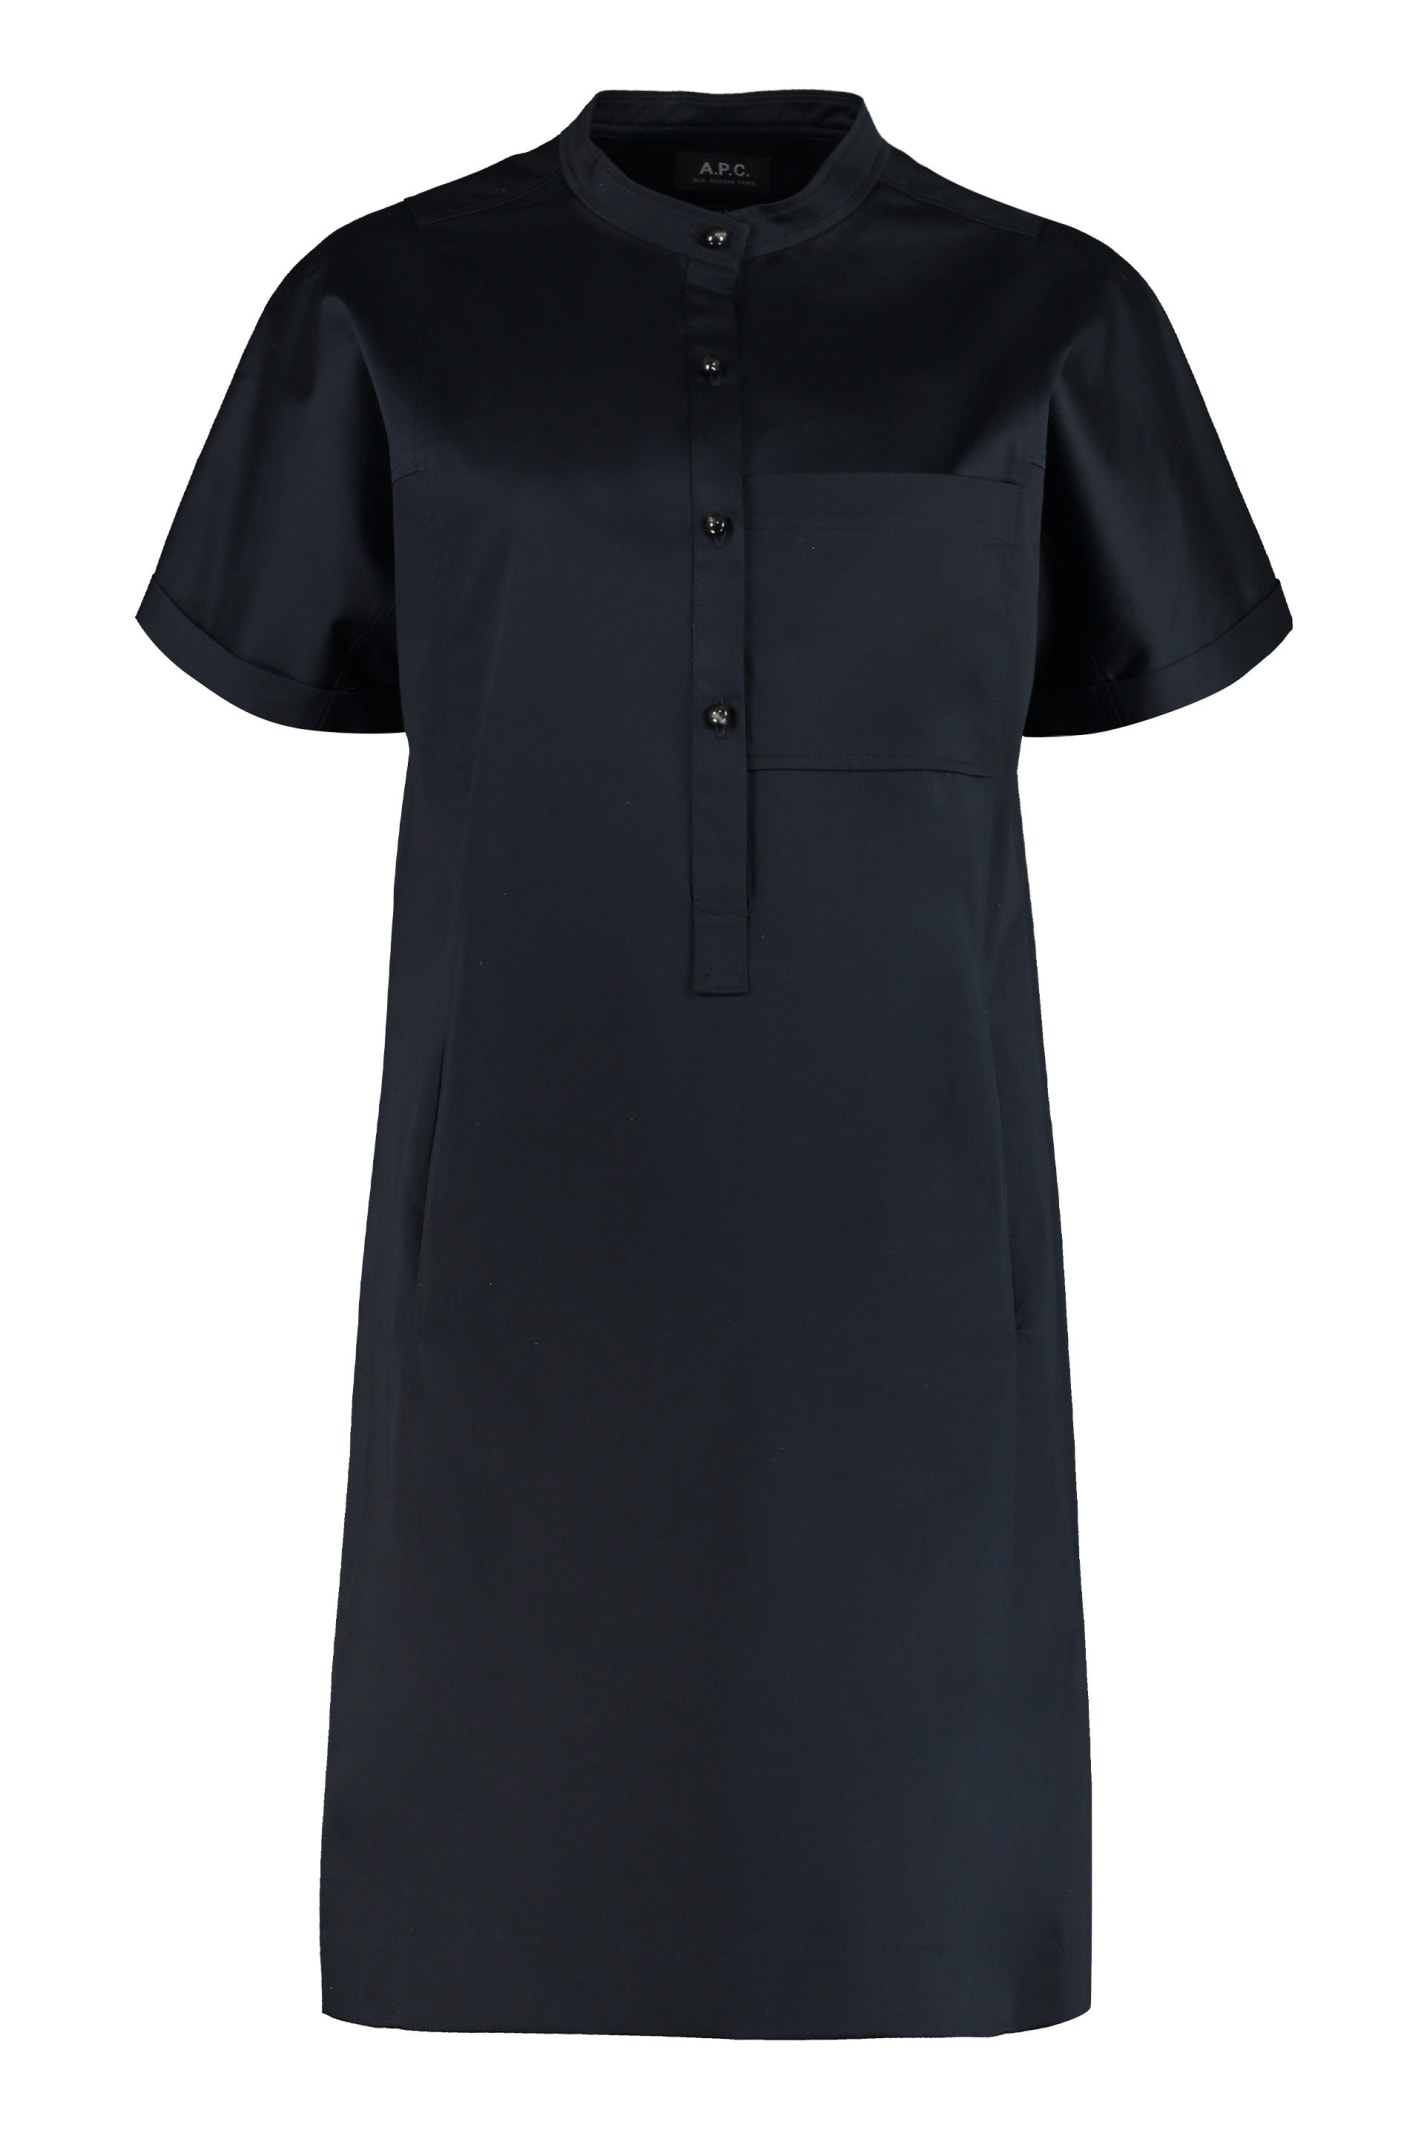 Buy A.P.C. Temple Poplin Mini Dress online, shop A.P.C. with free shipping